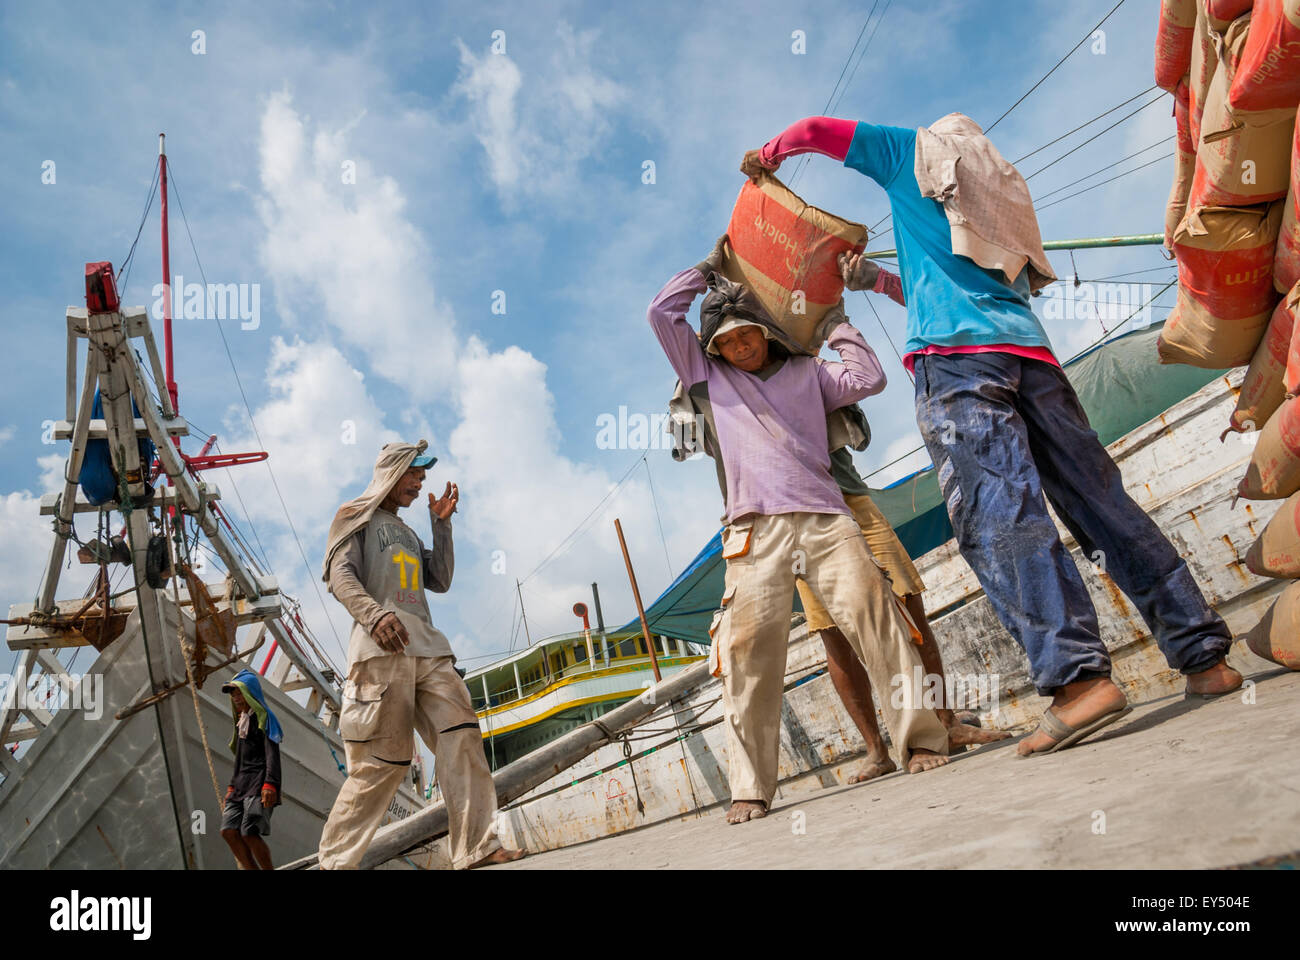 Men transporting cement sacks onto wooden ship on the New Year's Day 2008 at Sunda Kelapa traditional harbour, Indonesia. Stock Photo